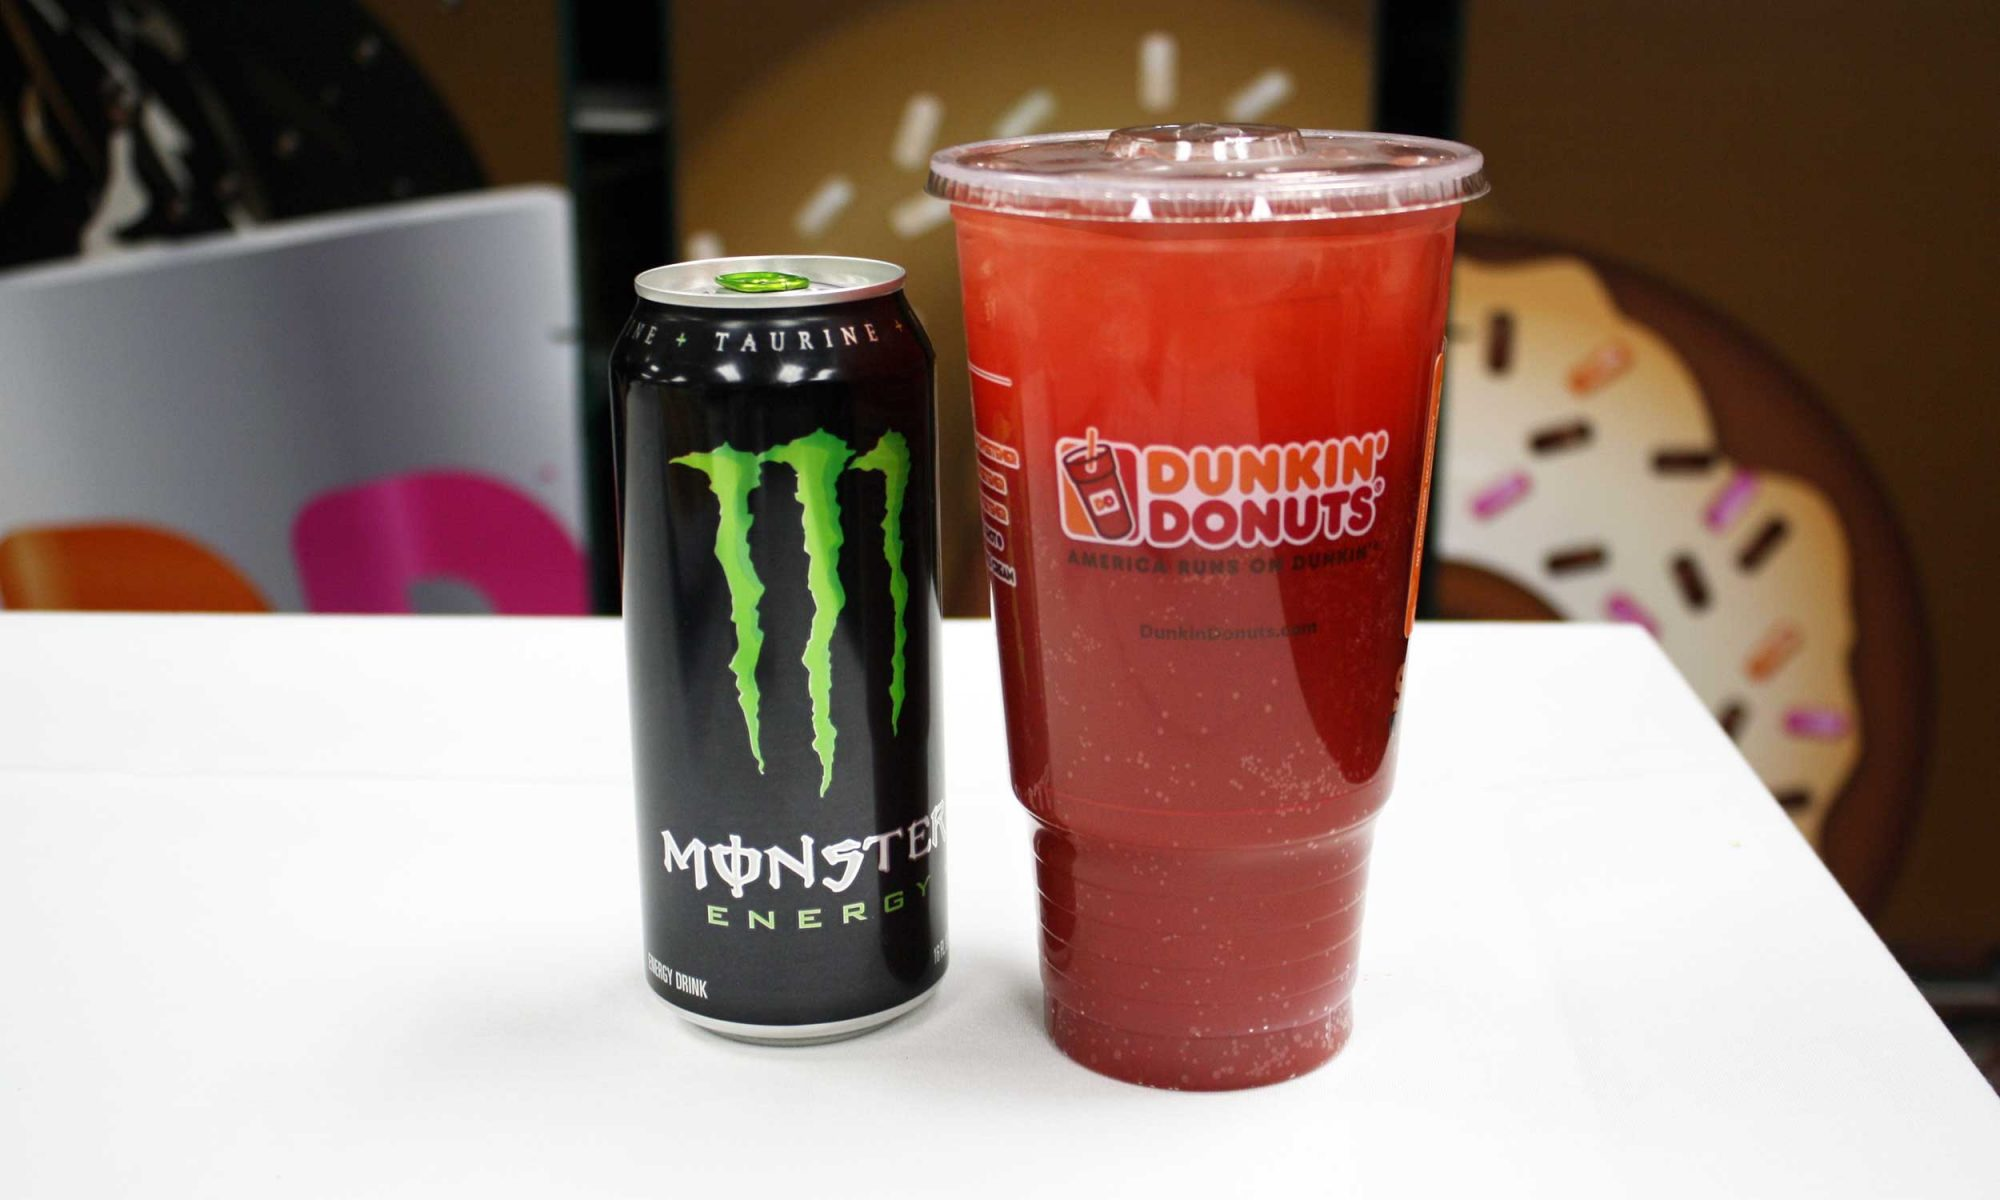 This New Dunkin Donuts Drink Is Just A Monster Energy